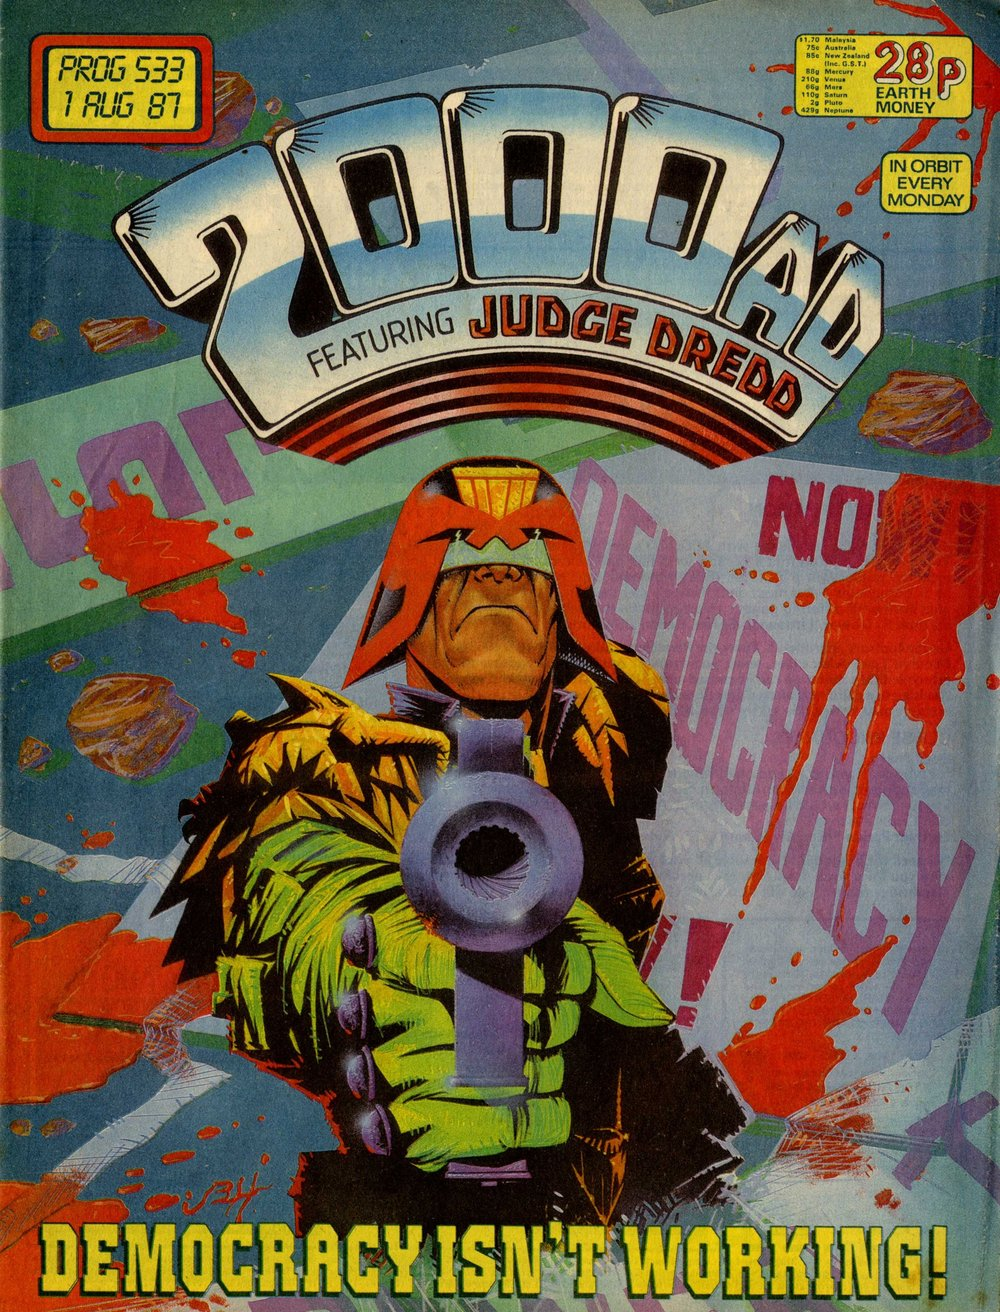 Judge Dredd, drawn by John Higgins